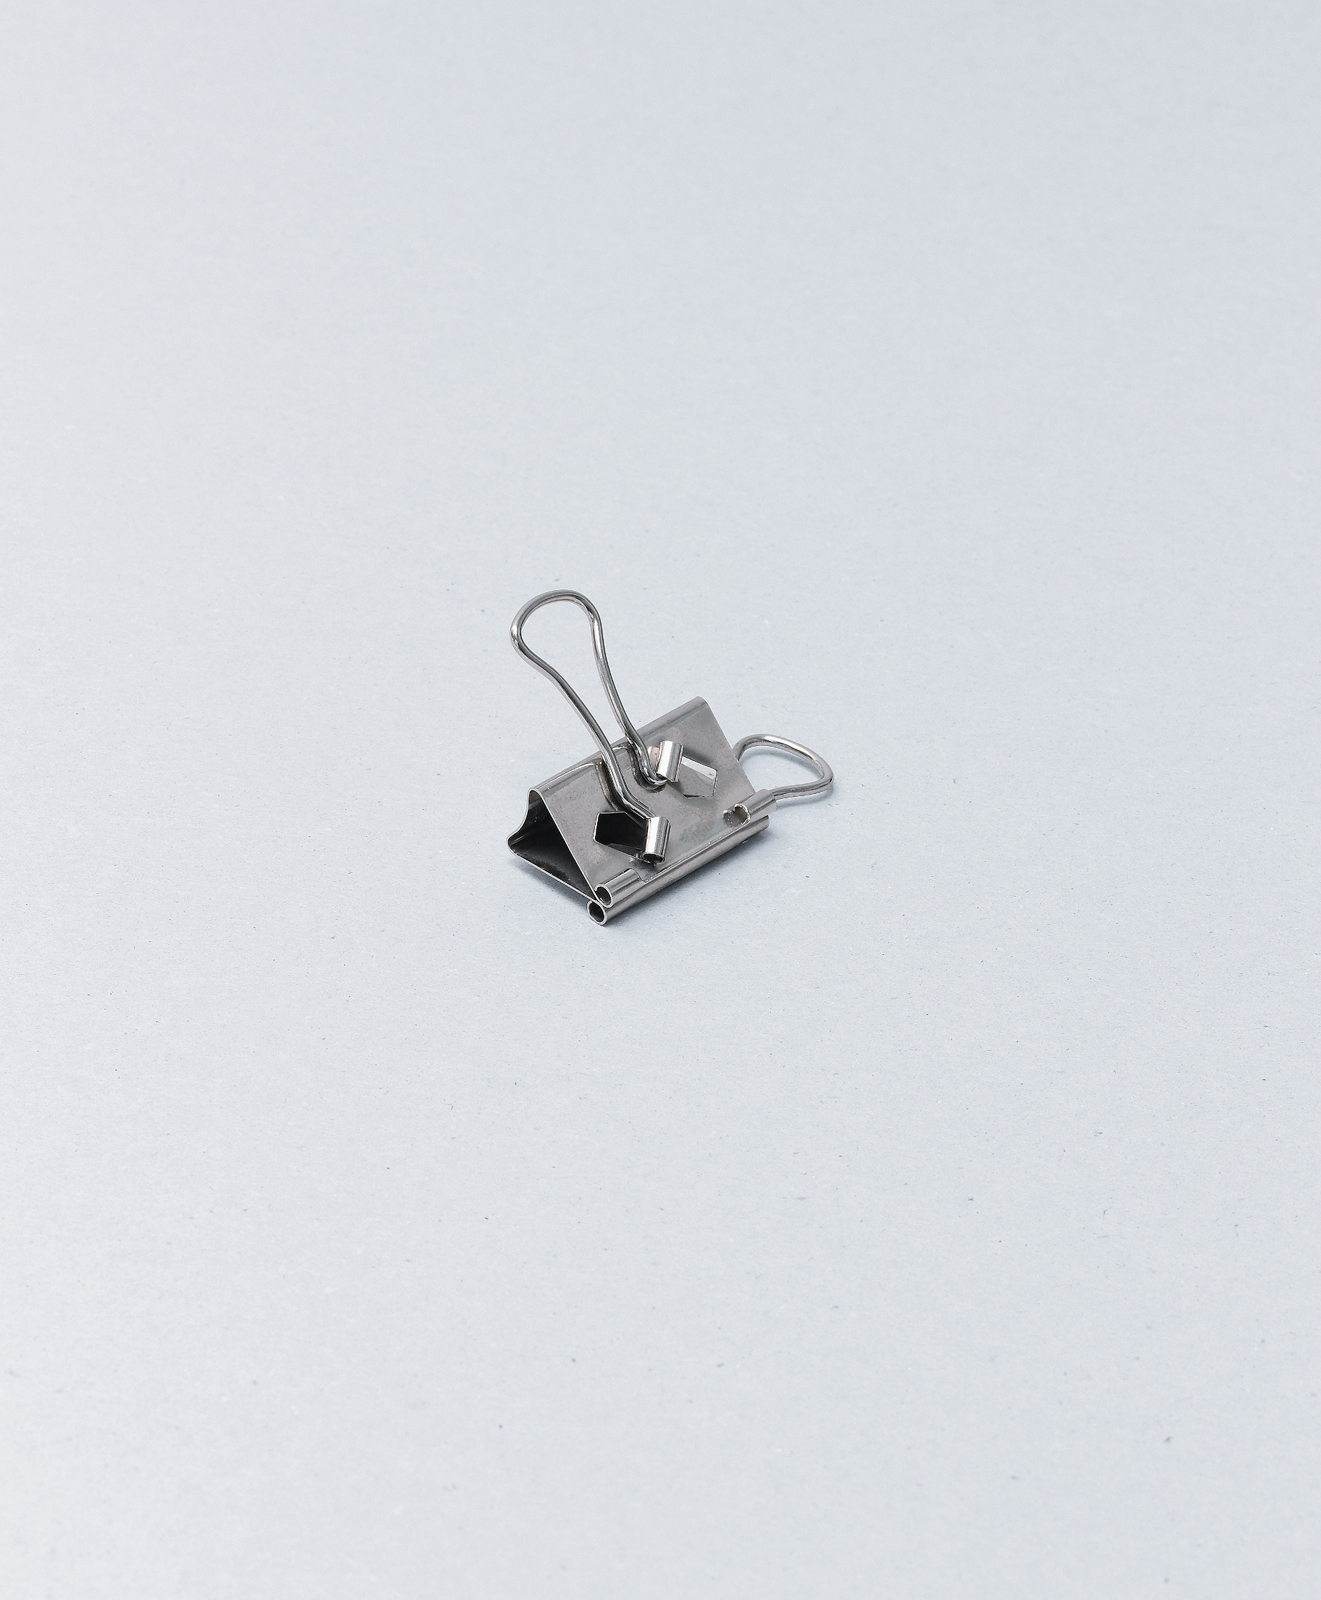 """""""A typical clip for holding papers together, but with an ingenious modification. The handles are folded at right angles to the clip so that it avoids obscuring text on the page.""""—Sam Hecht. Photo: © Usefulness in Small Things, Rizzoli, 2011."""